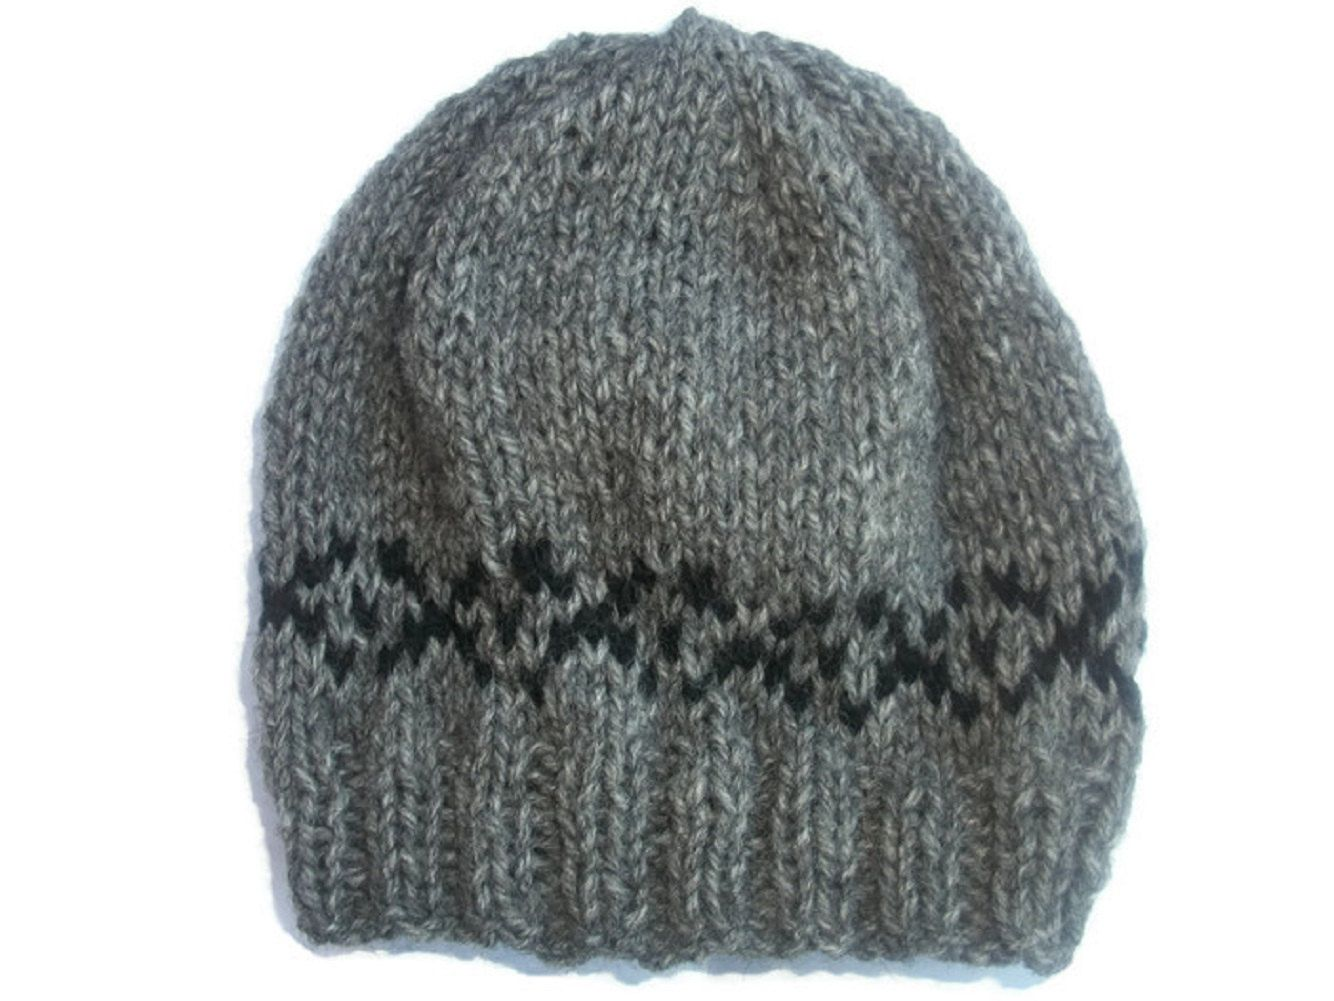 Items similar to Knit Baby hat e2a3ca88e8ad